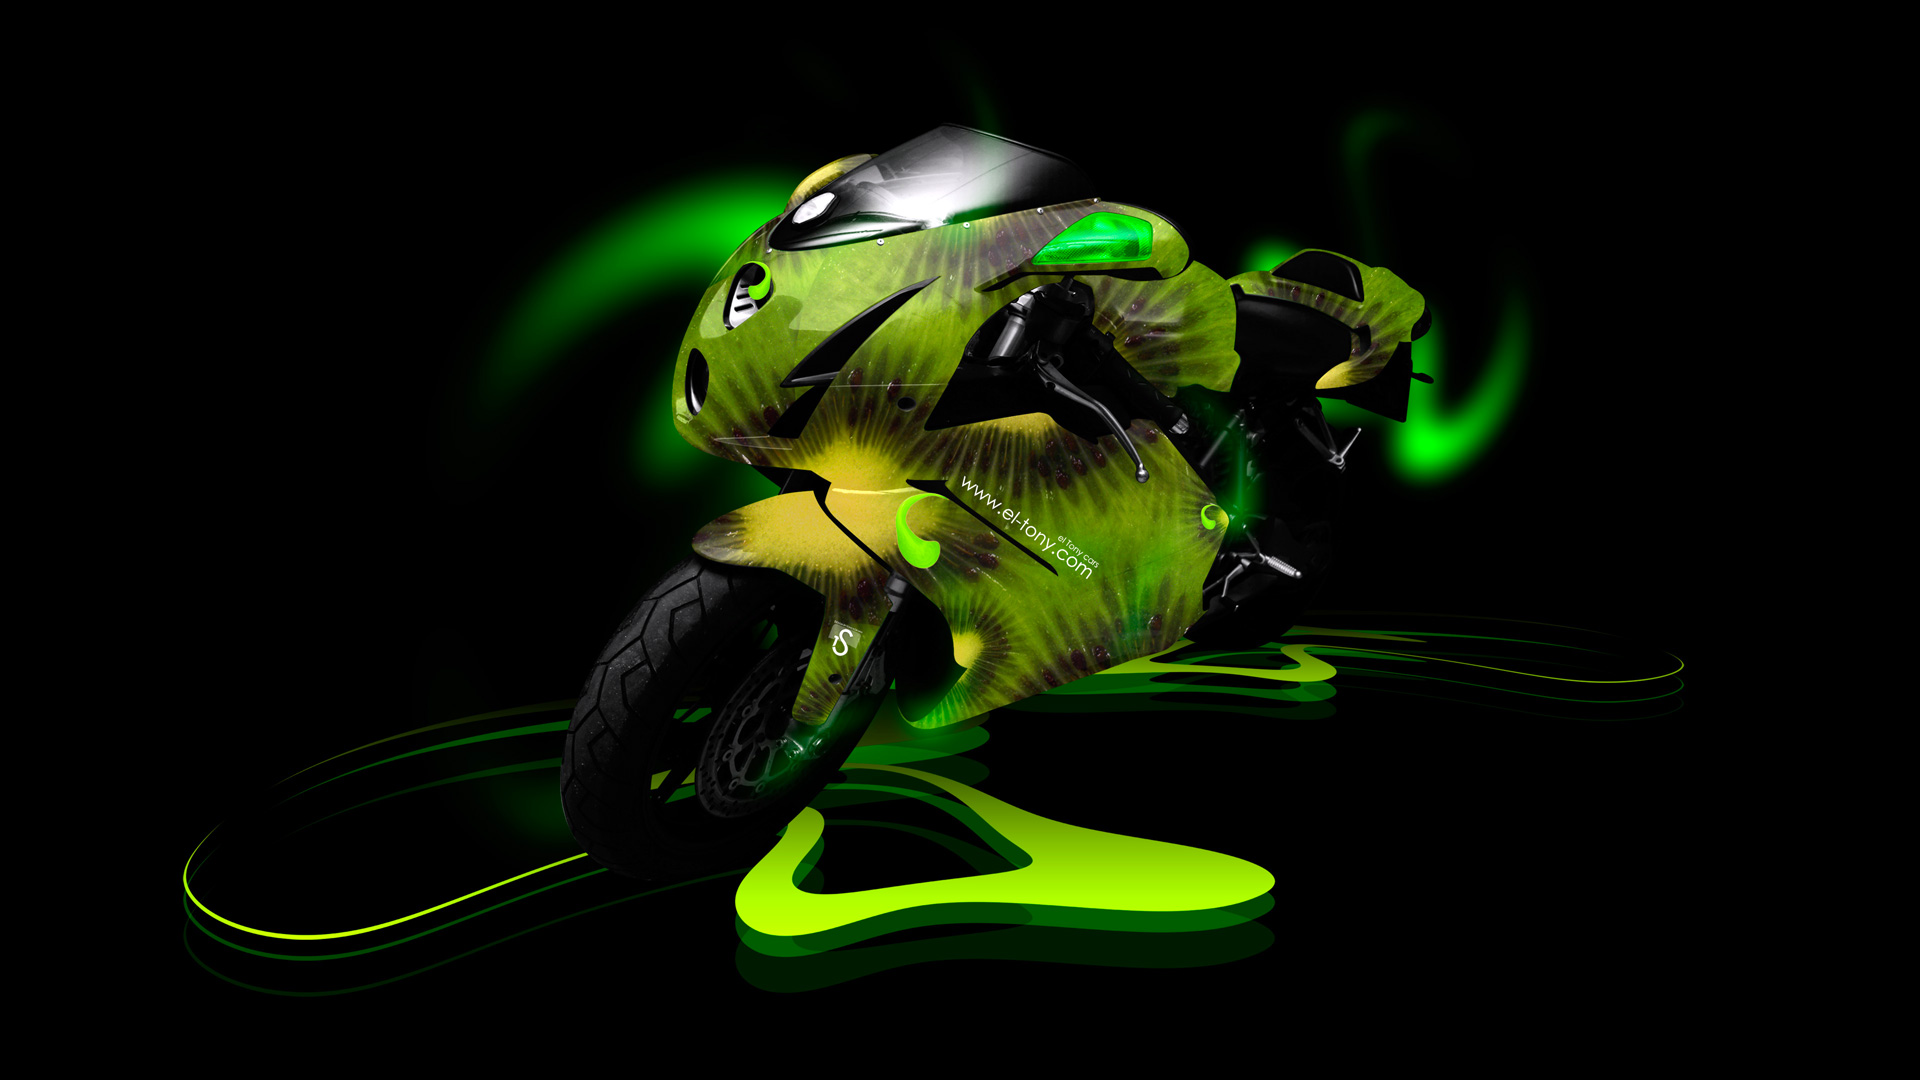 Superieur Moto Ducati 999 Kiwi Aerography Green Neon Bike